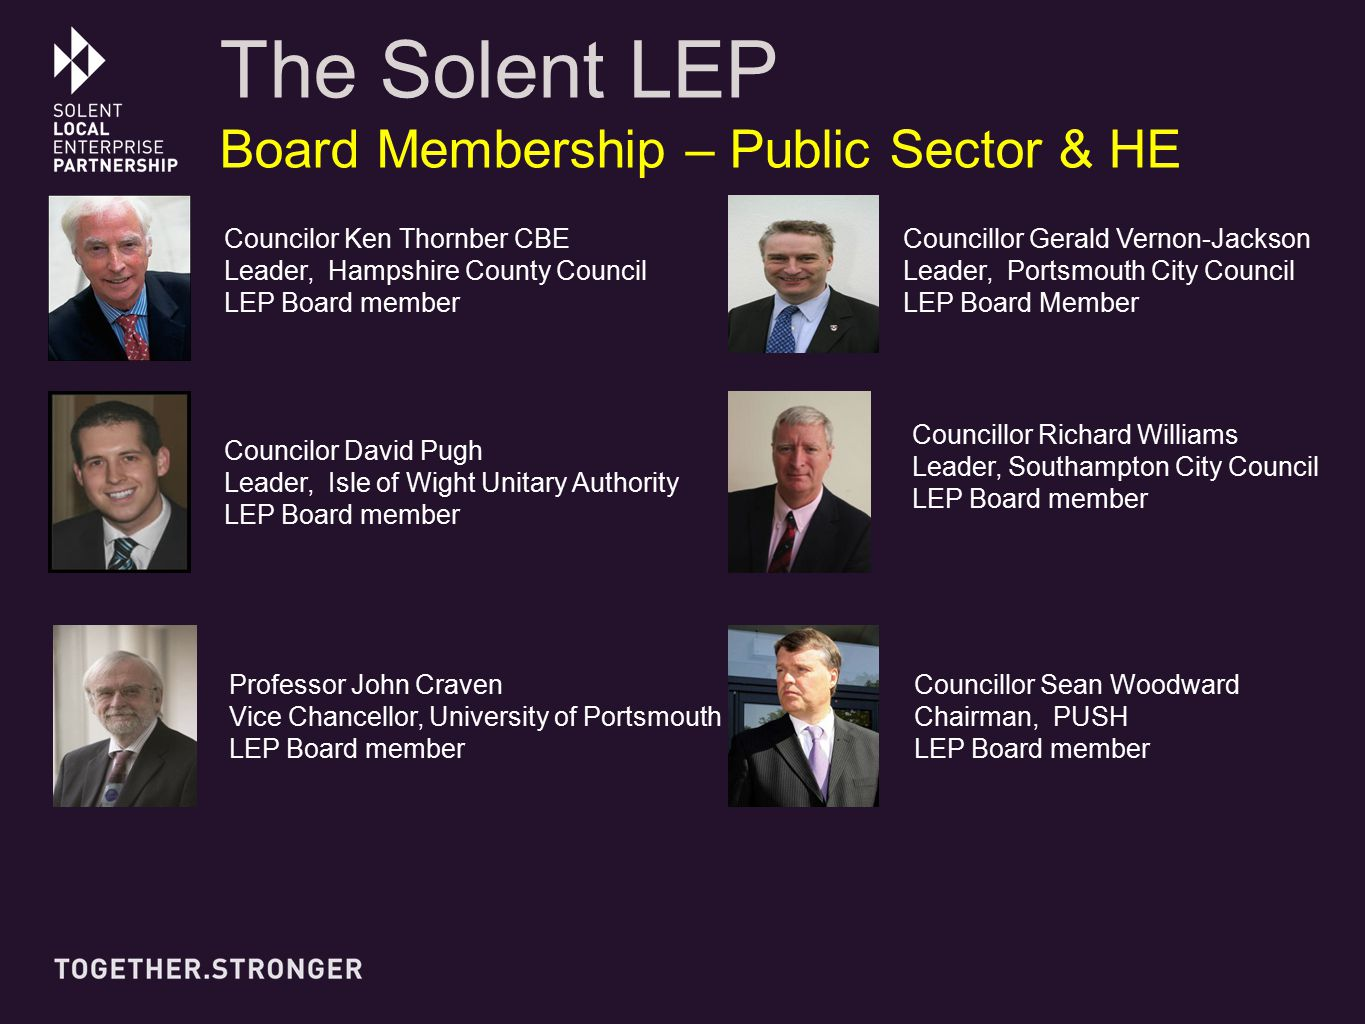 The Solent LEP Board Membership – Public Sector & HE Councilor Ken Thornber CBE Leader, Hampshire County Council LEP Board member Professor John Craven Vice Chancellor, University of Portsmouth LEP Board member Councillor Gerald Vernon-Jackson Leader, Portsmouth City Council LEP Board Member Councillor Richard Williams Leader, Southampton City Council LEP Board member Councilor David Pugh Leader, Isle of Wight Unitary Authority LEP Board member Councillor Sean Woodward Chairman, PUSH LEP Board member